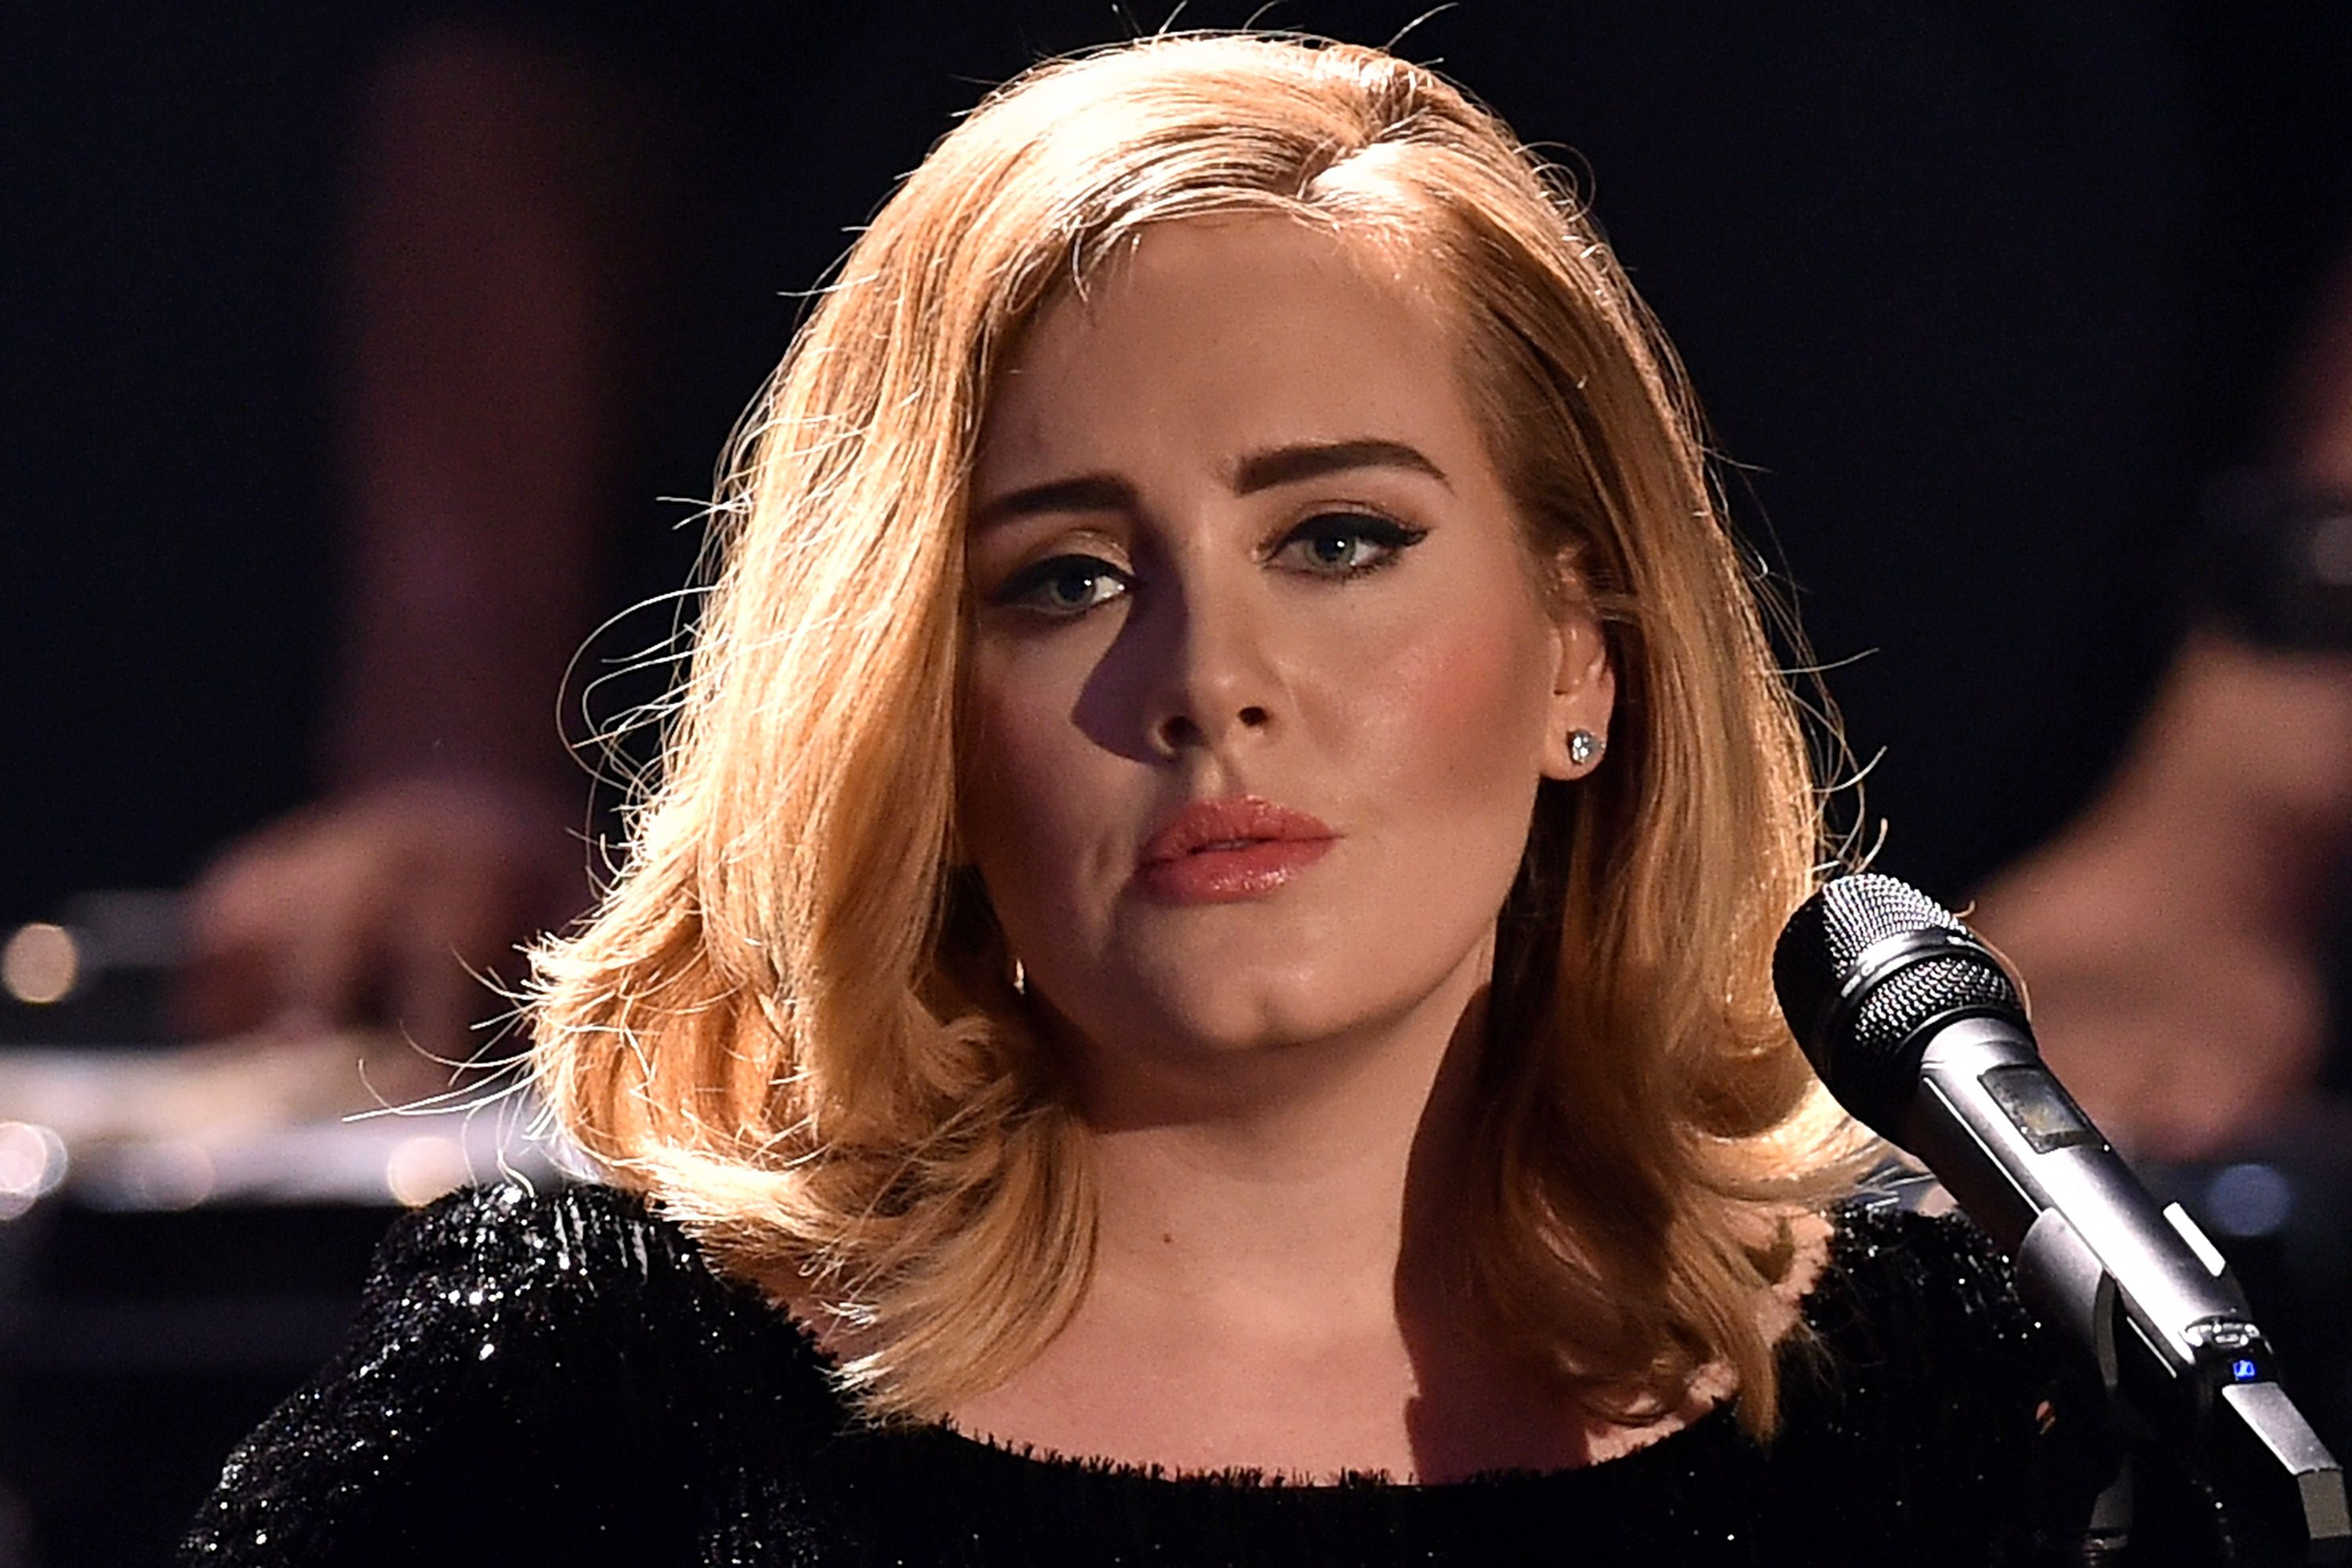 Is Adele Going Too Far In Her Weight Loss Goals Her Friends Are Deeply Concerned